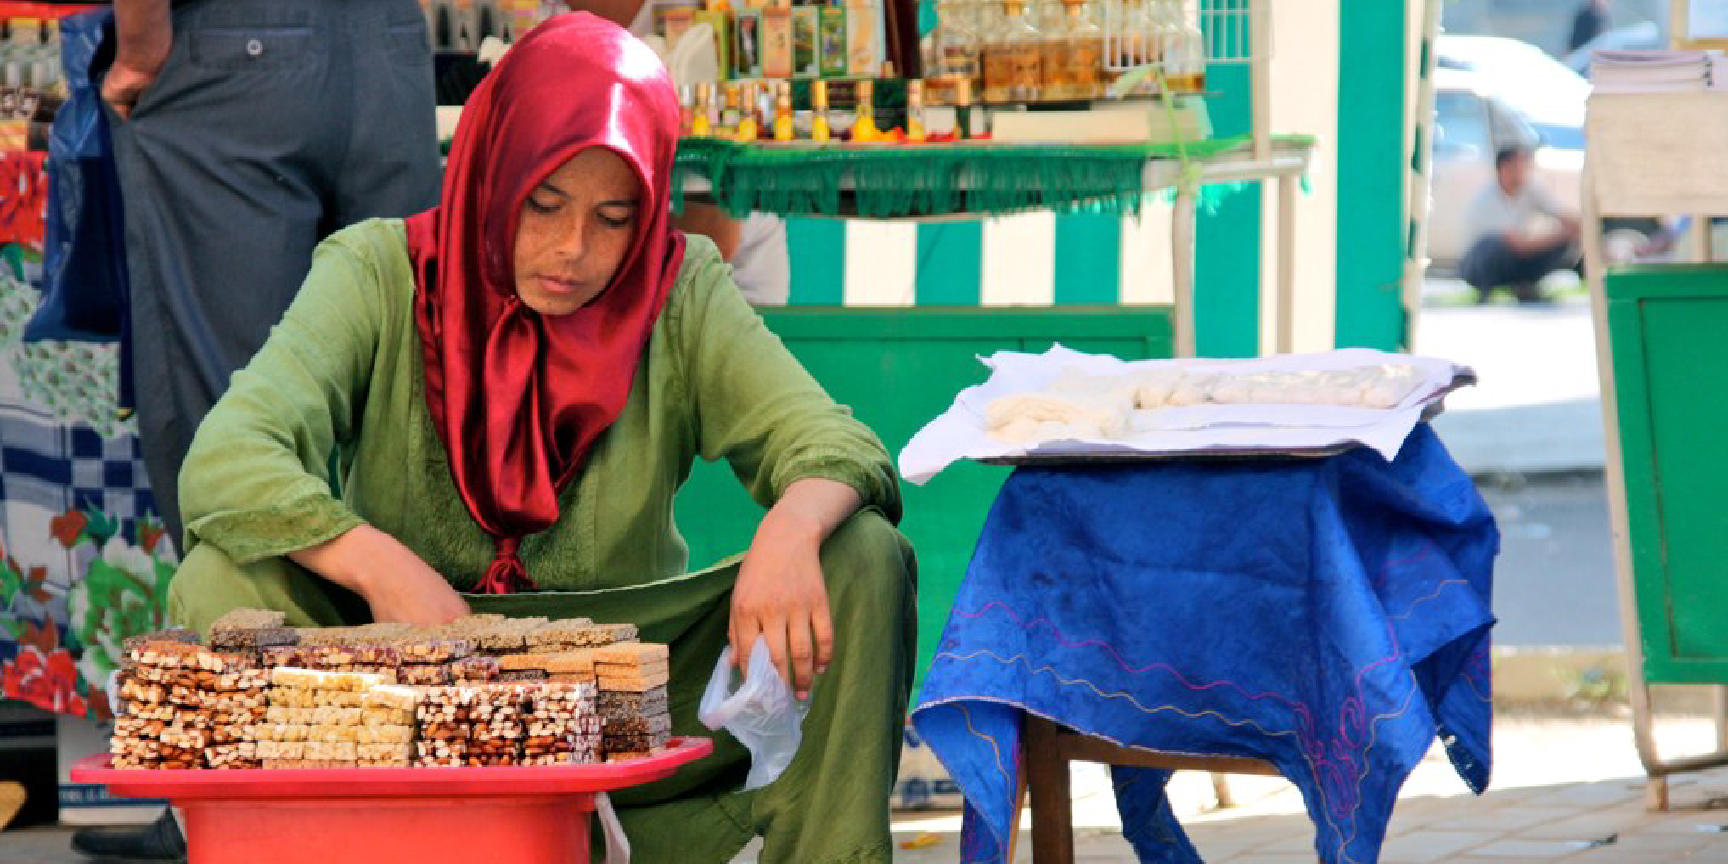 A woman tends a market stall